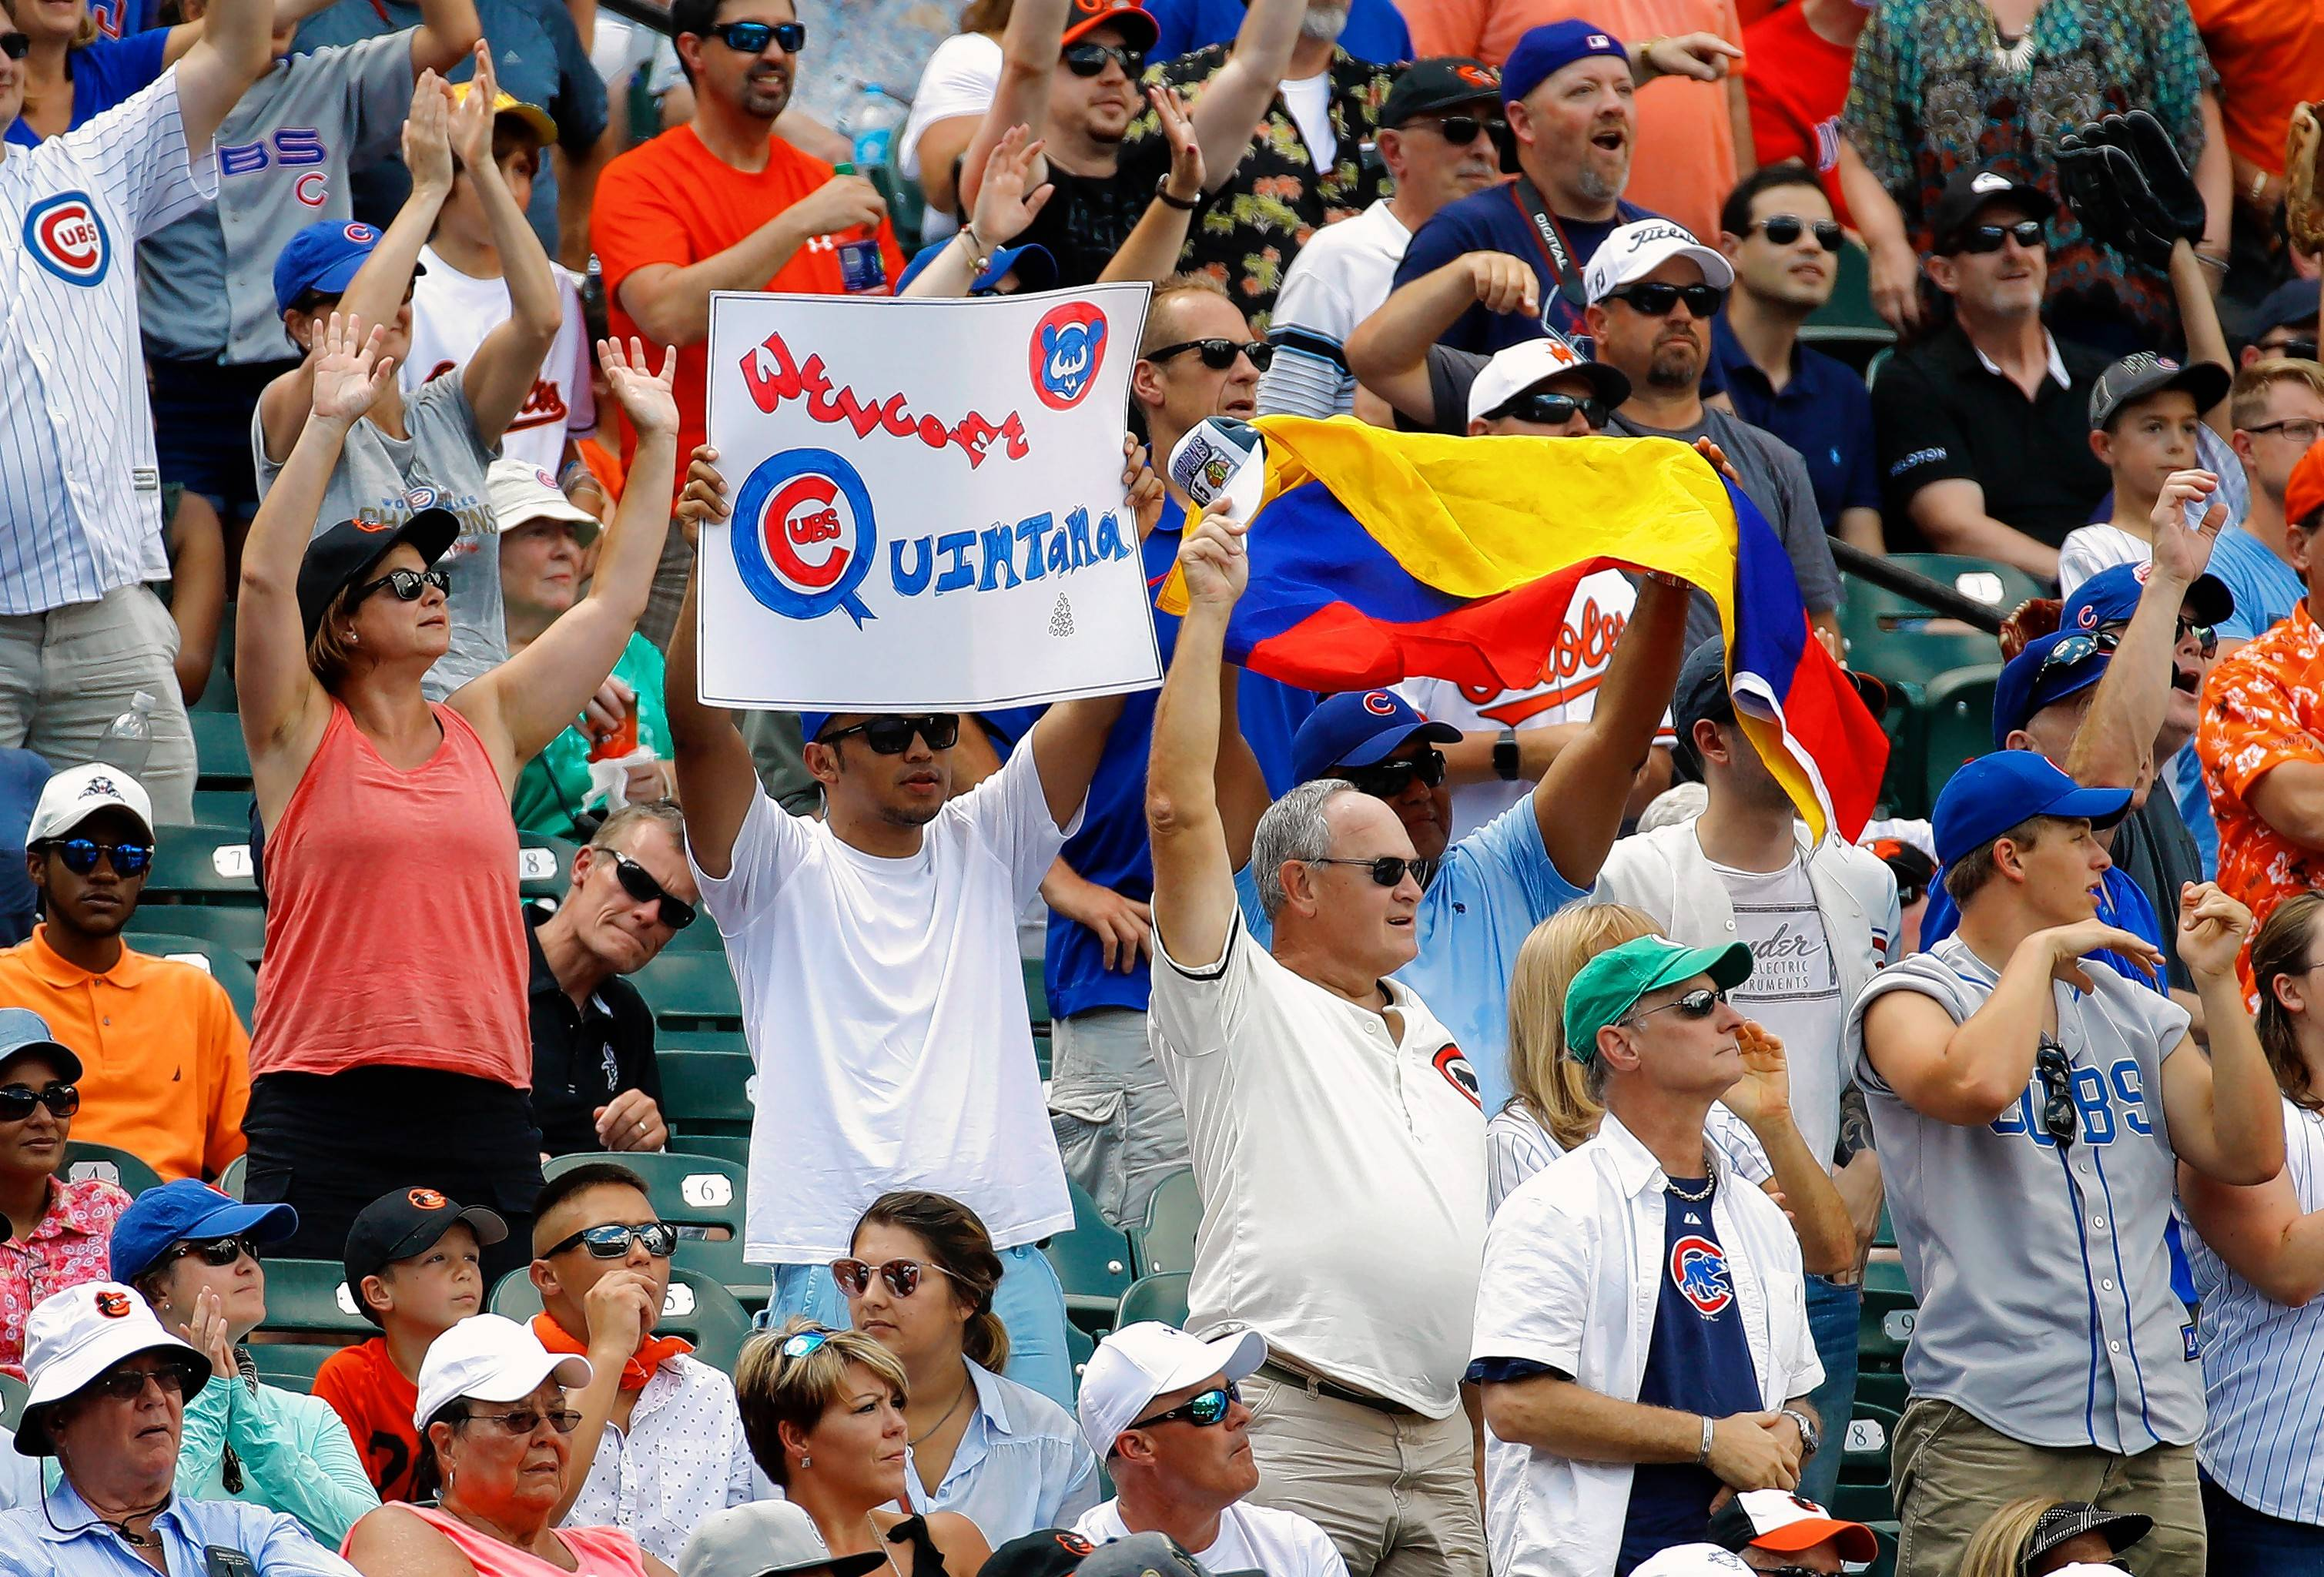 So many Chicago Cubs fans show up at opponents' ballparks that it often seems as if every Cubs game is a home game. A fan holds a sign for new Cubs' starting pitcher Jose Quintana during this July game against the Baltimore Orioles in Baltimore.